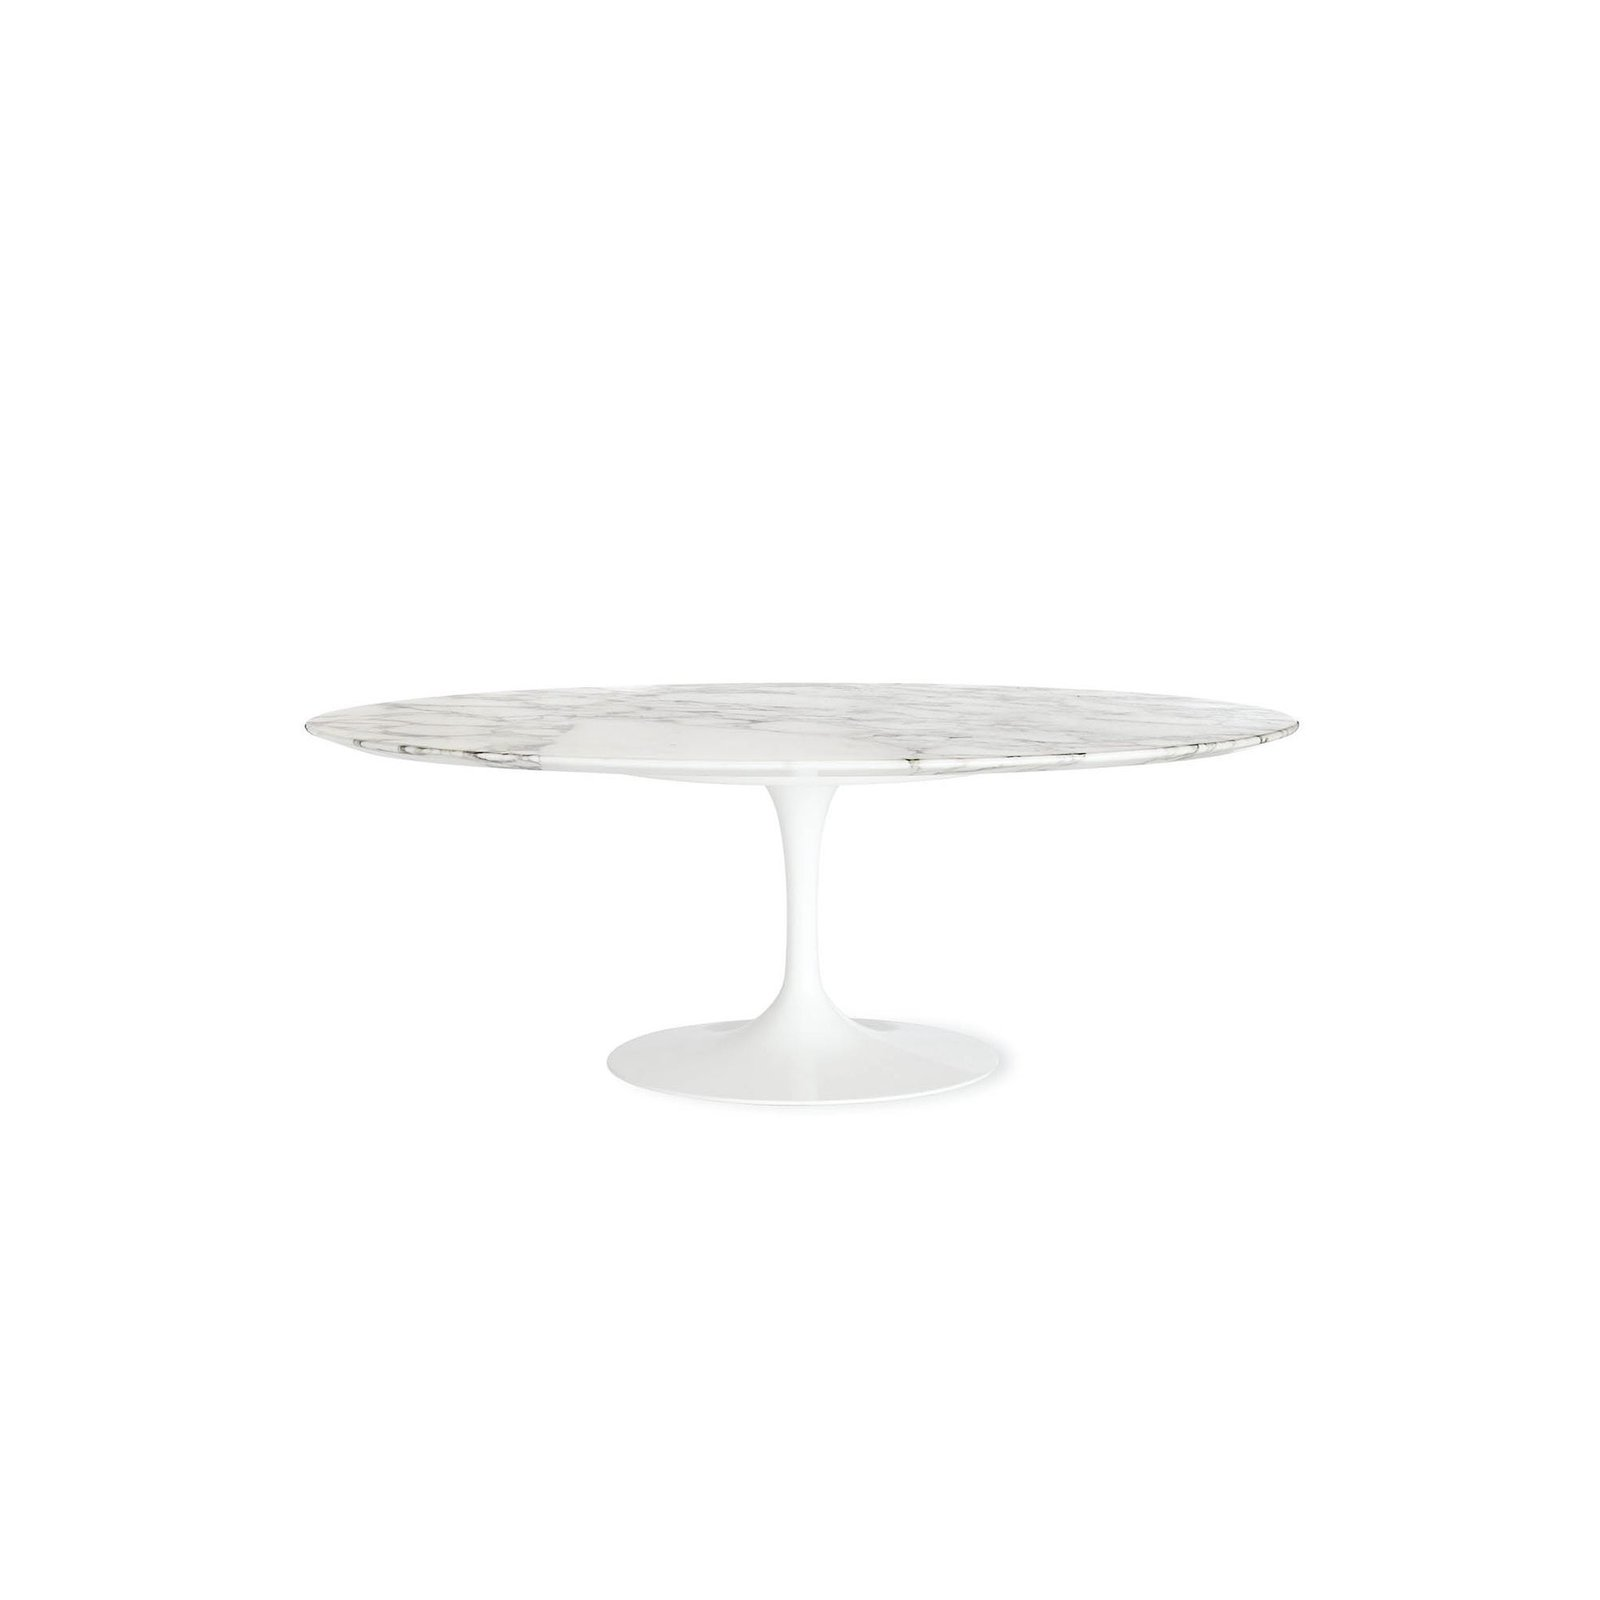 Saarinen low oval coffee table by design within reach dwell saarinen low oval coffee table geotapseo Choice Image